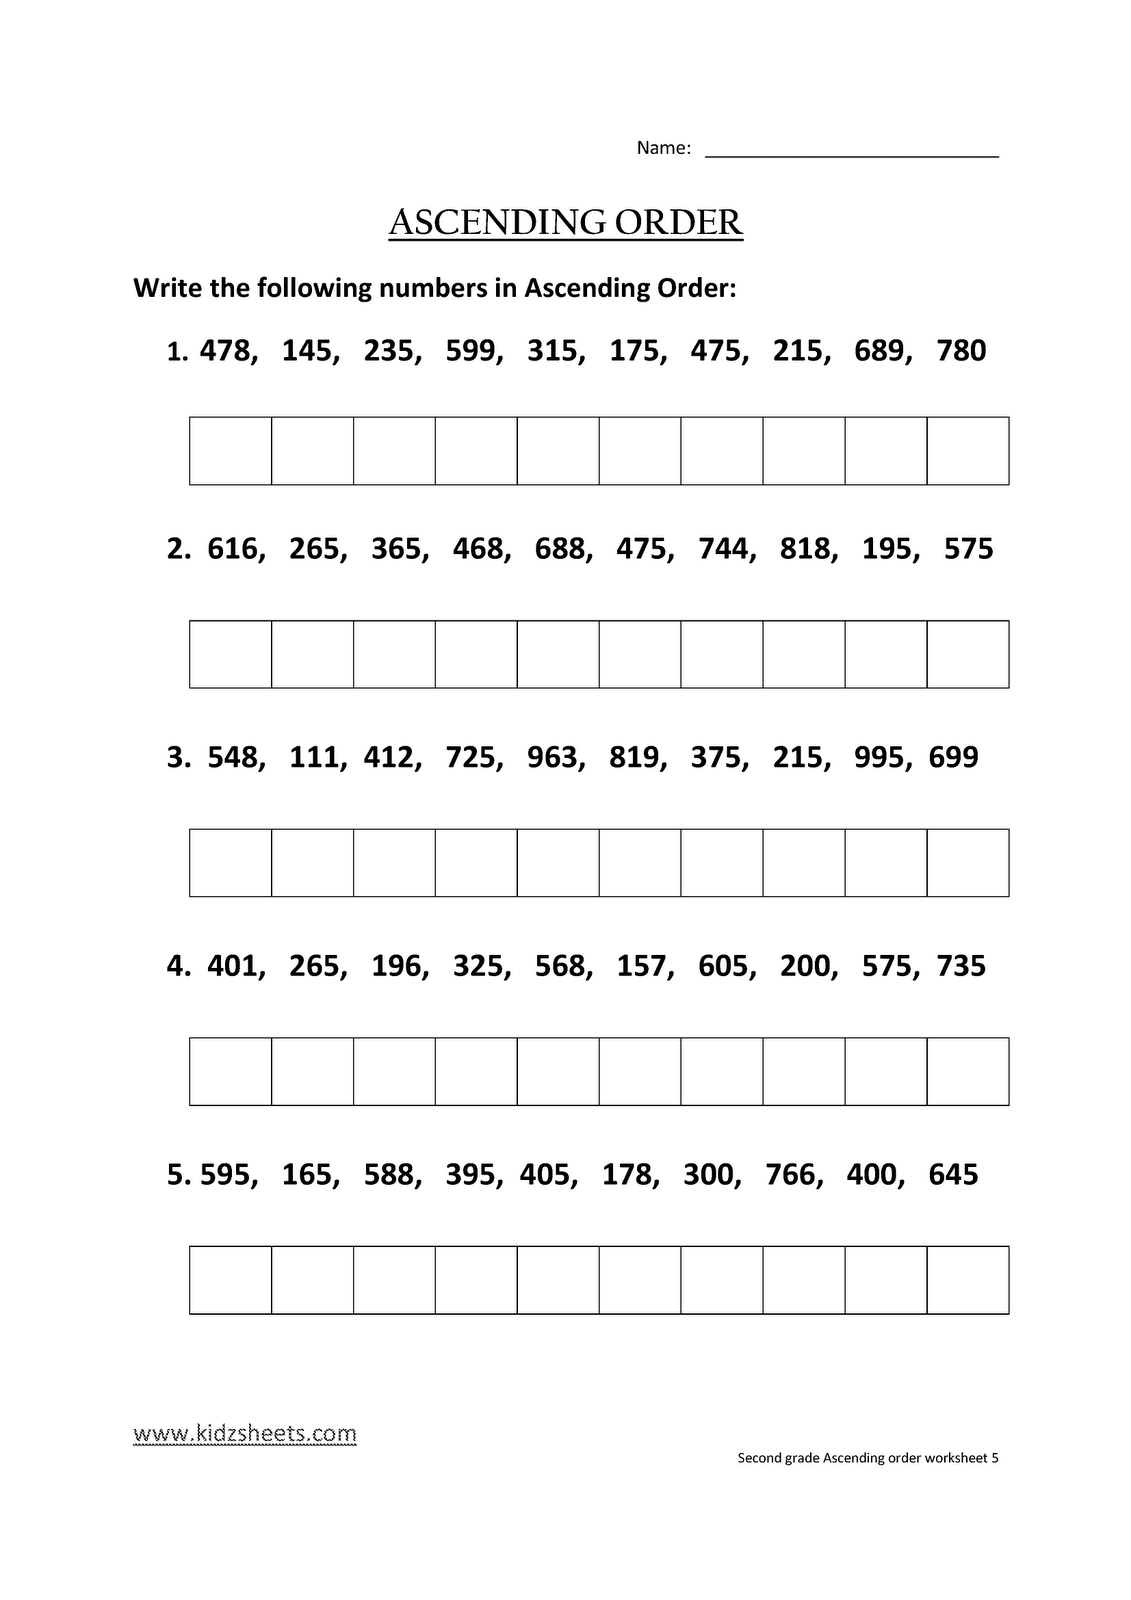 Kidz Worksheets Second Grade Ascending Order Worksheet5